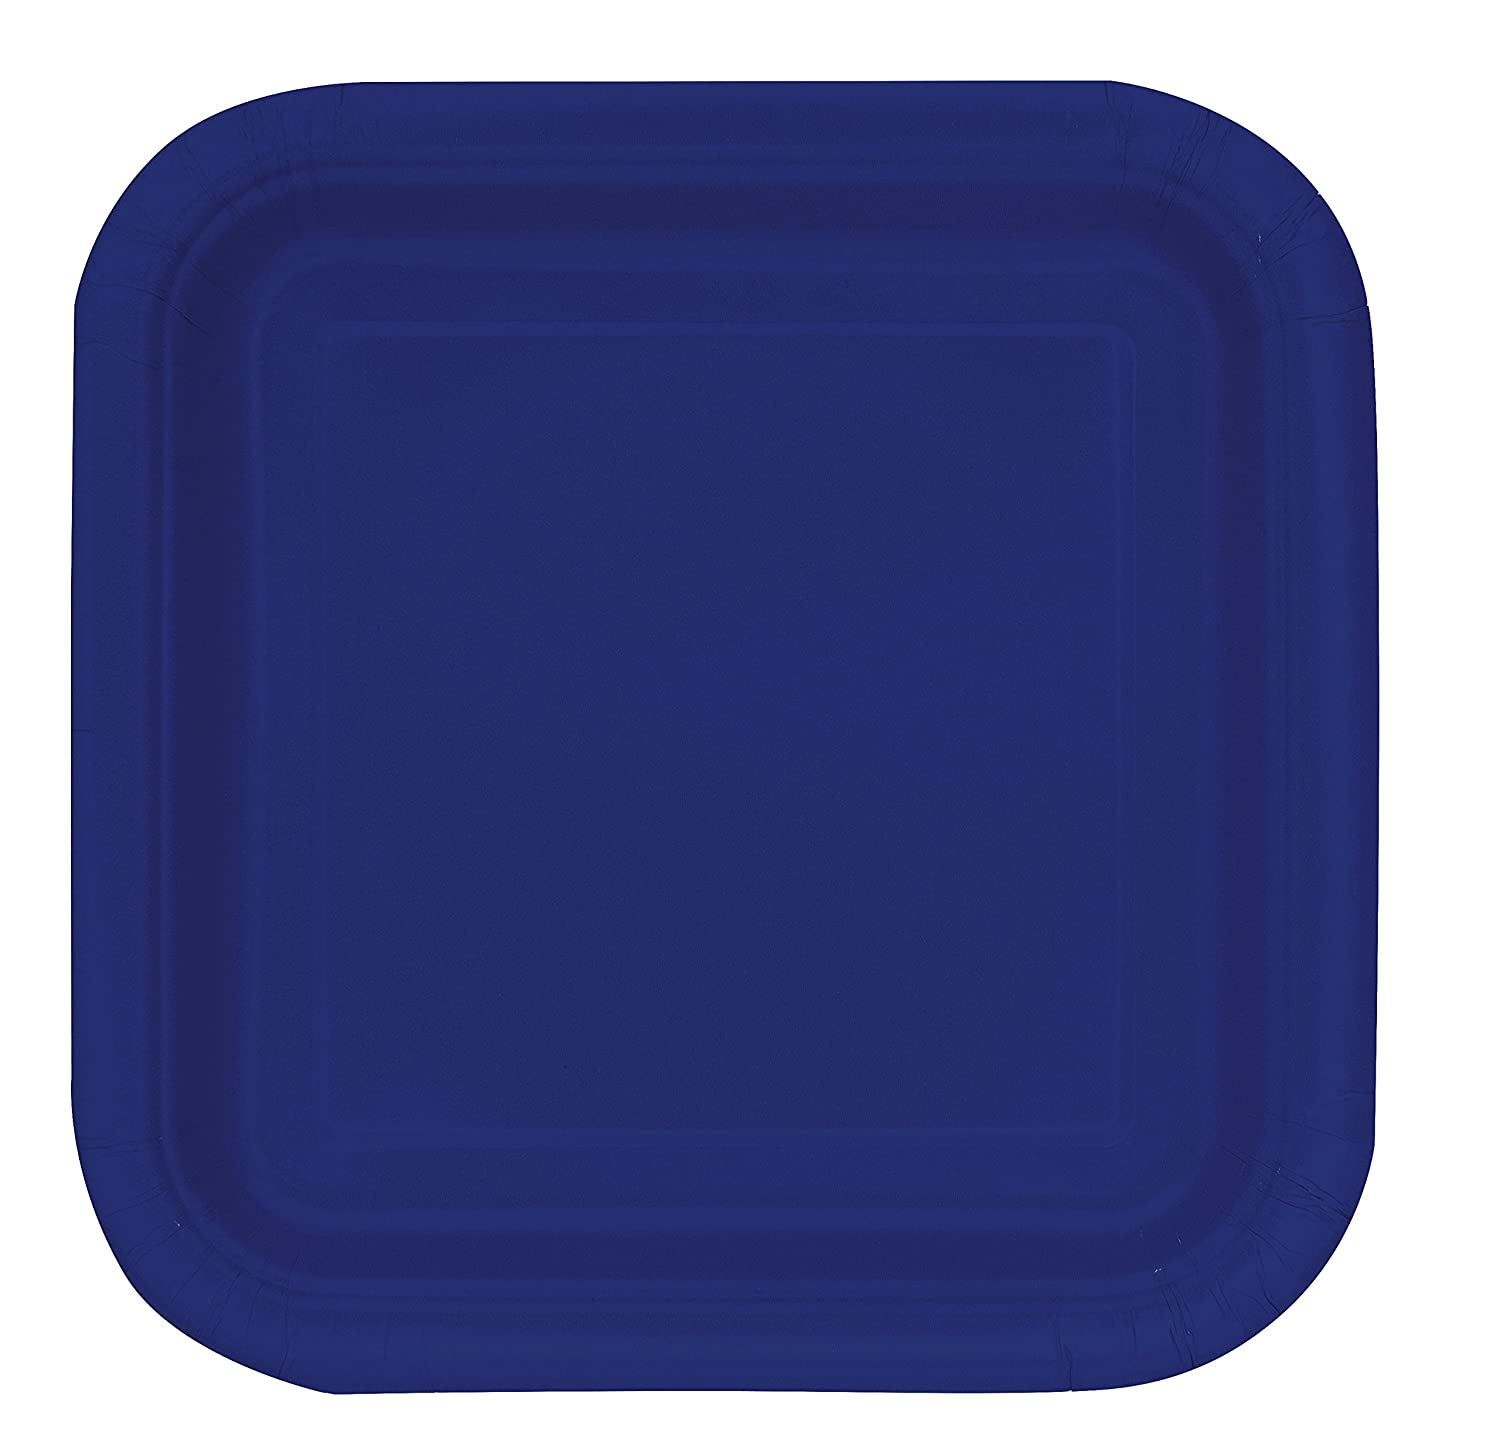 sc 1 st  Amazon.ca & Square Navy Blue Dinner Plates 14ct: Amazon.ca: Home u0026 Kitchen